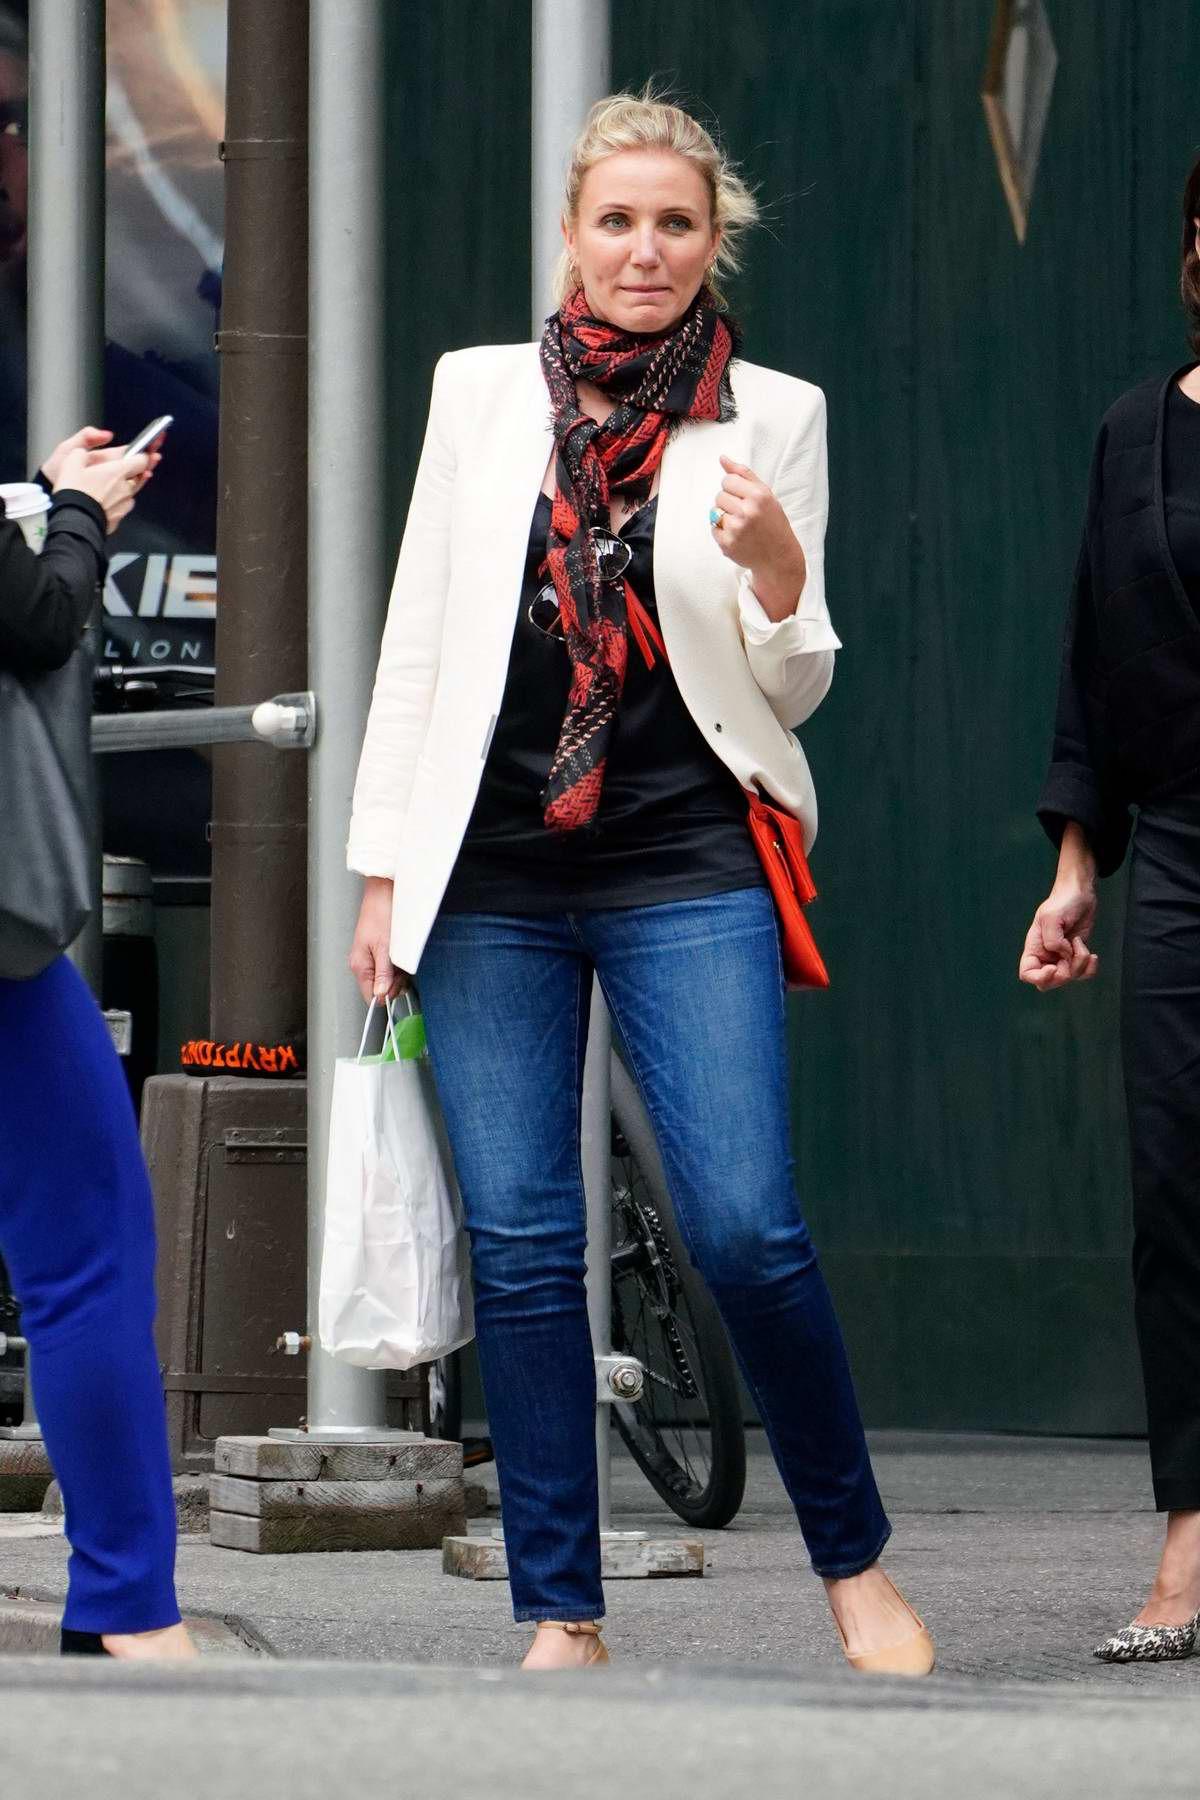 Cameron Diaz seen wearing white blazer with a scarf and jeans while out shopping with a friend in New York City